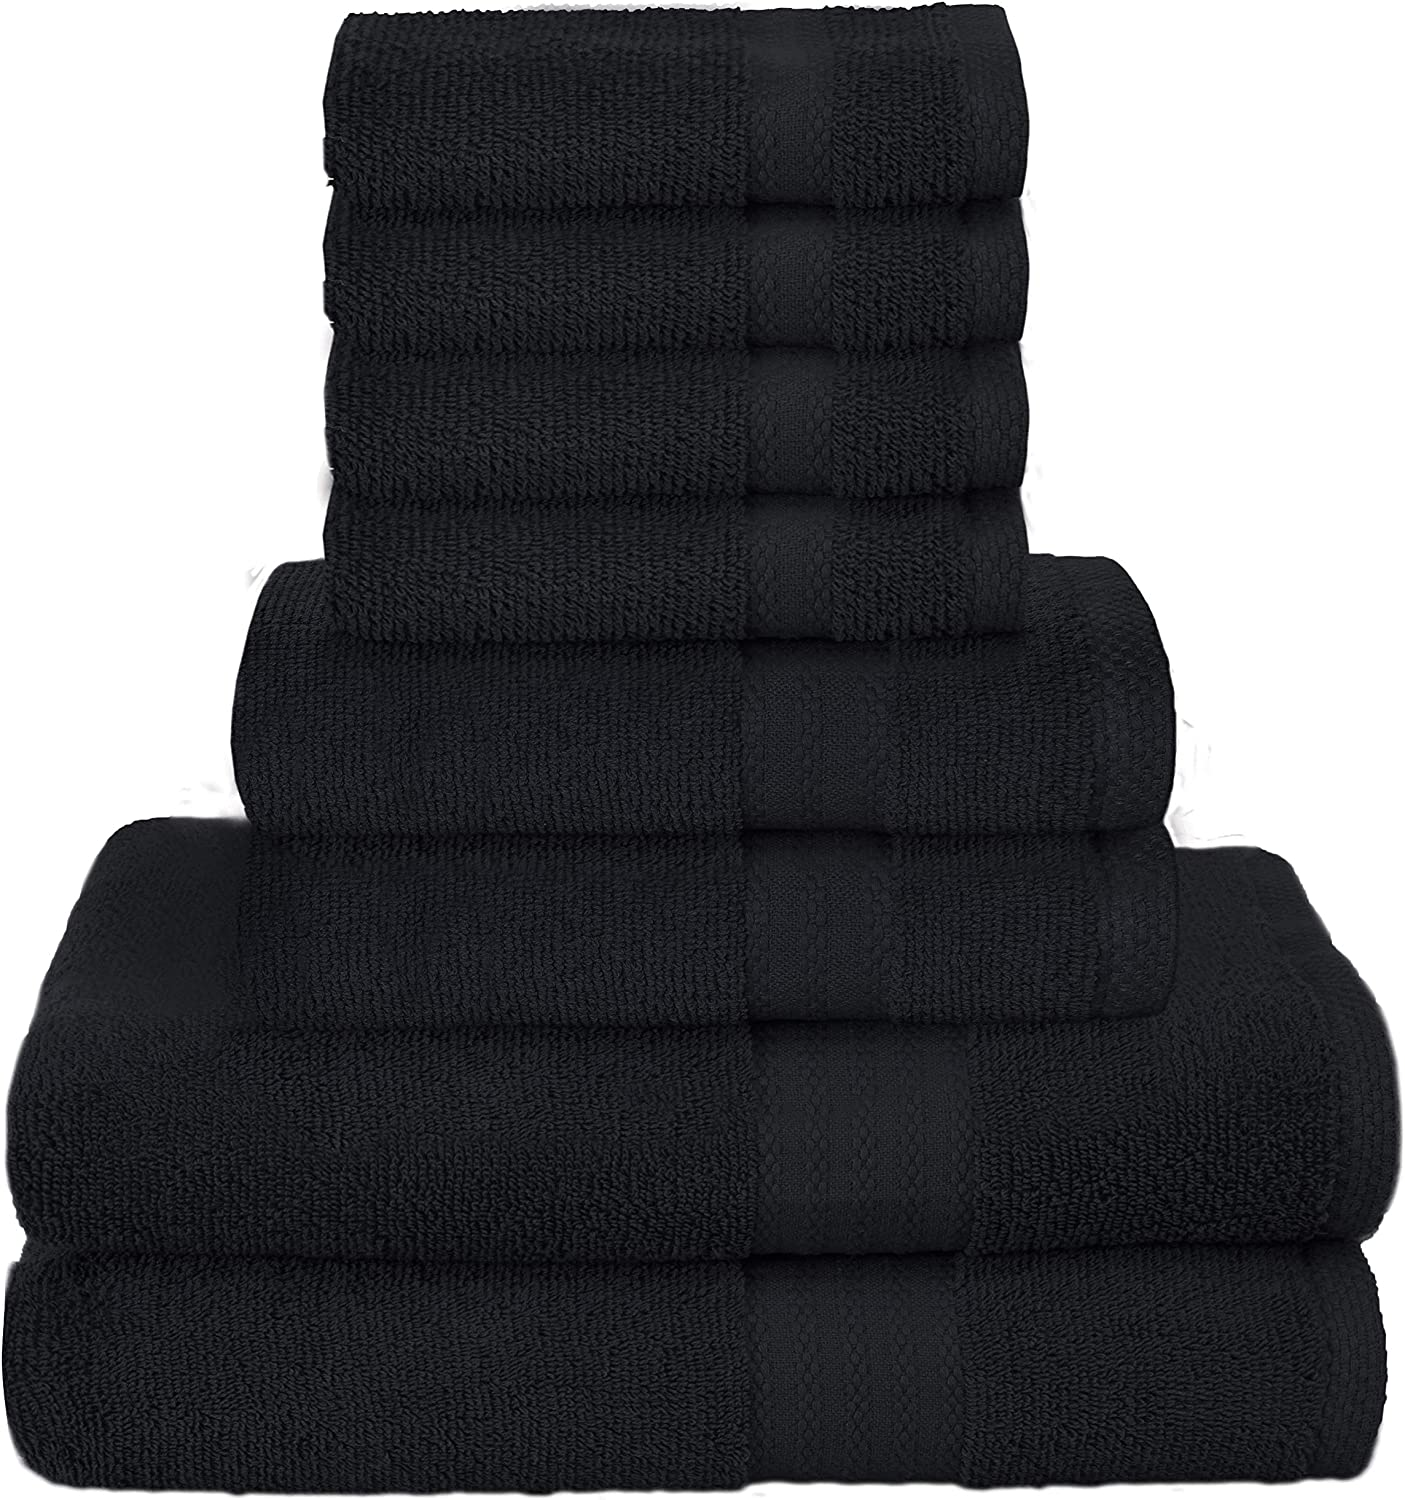 GLAMBURG Ultra Soft 8-Piece Towel Set - 100% Pure Ringspun Cotton, Contains 2 Oversized Bath Towels 27x54, 2 Hand Towels 16x28, 4 Wash Cloths 13x13 - Ideal for Everyday use, Hotel & Spa - Black